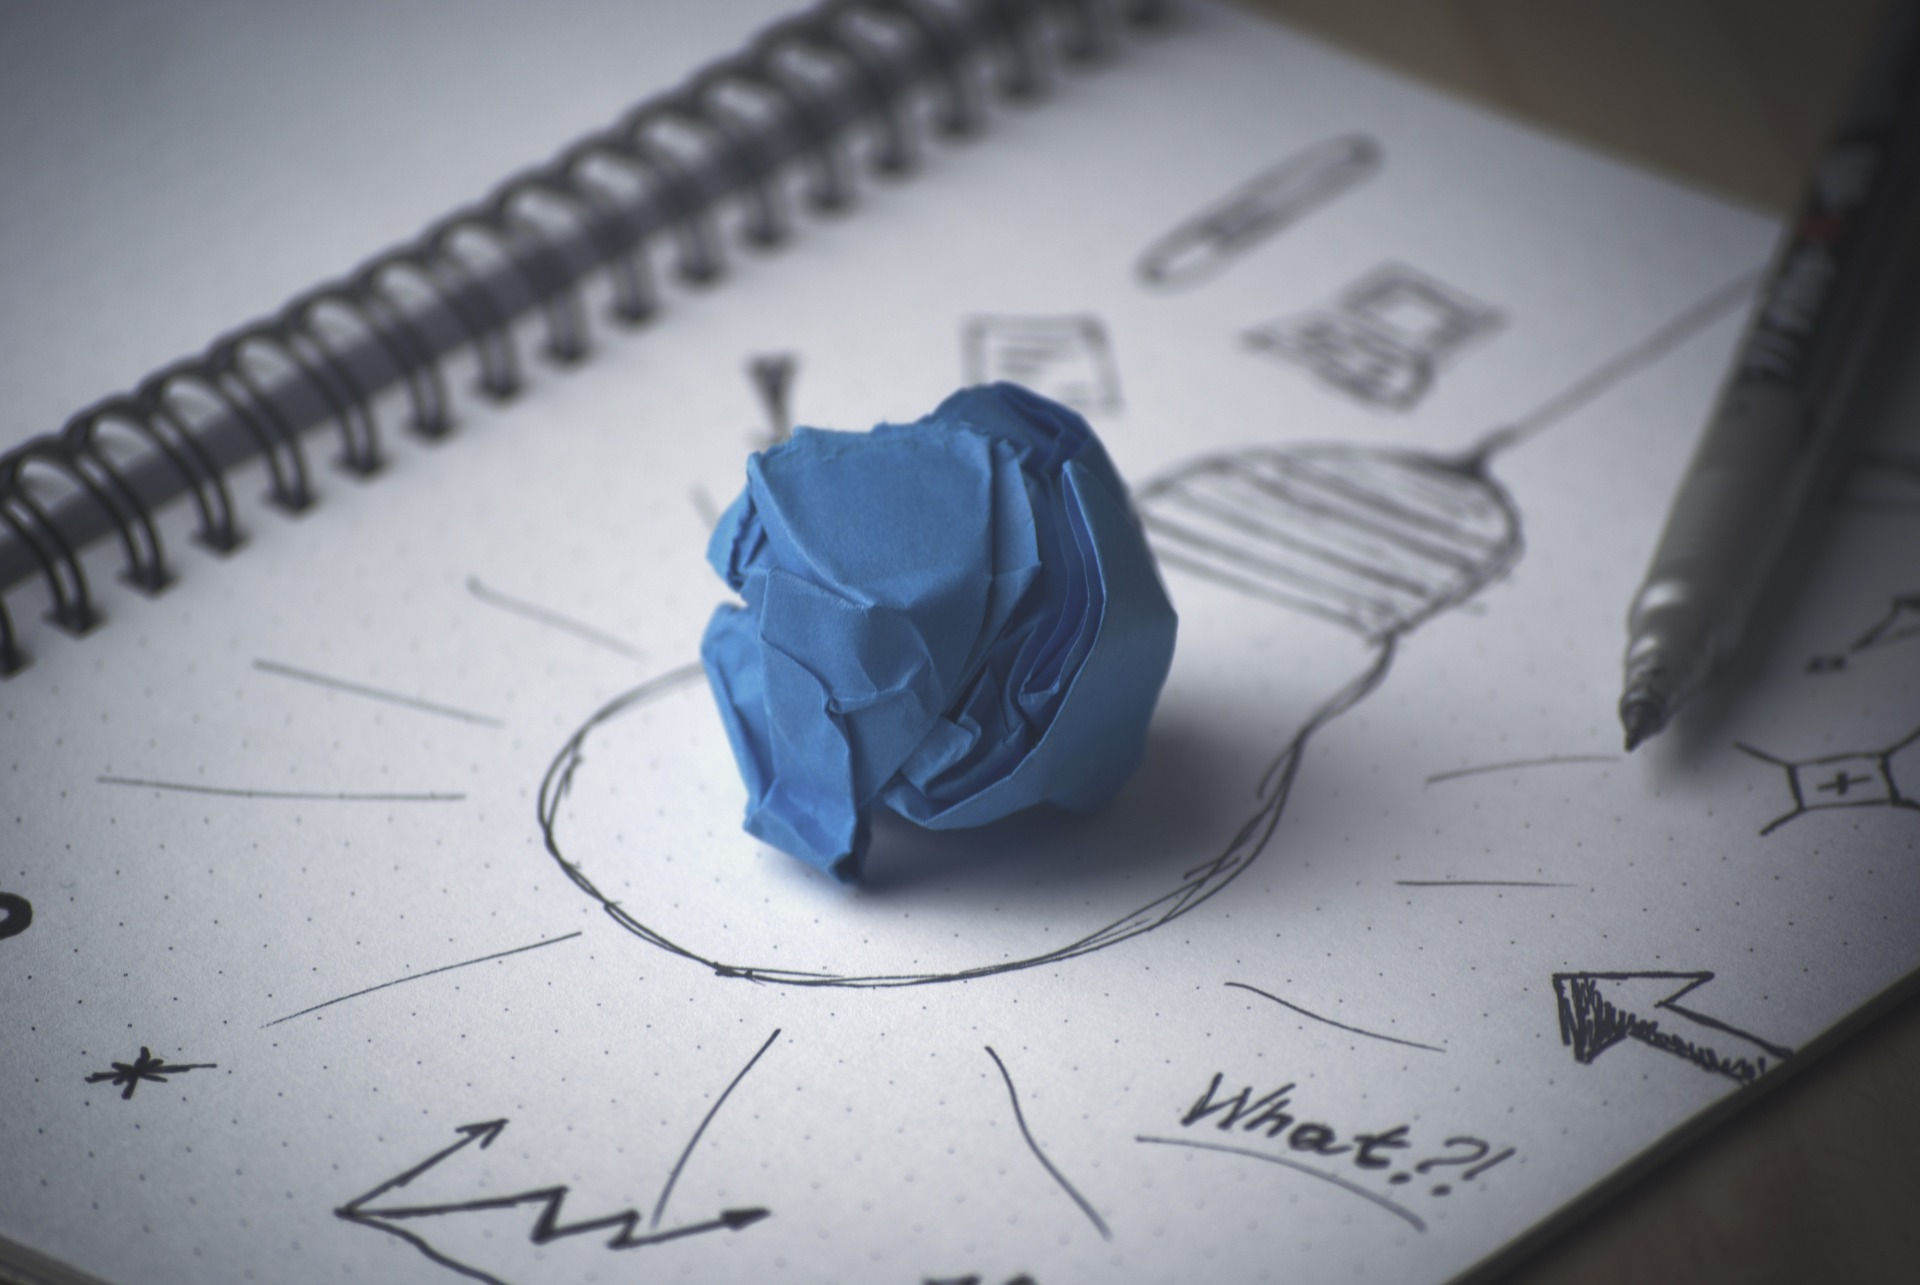 Empowering Students to Design their own Learning